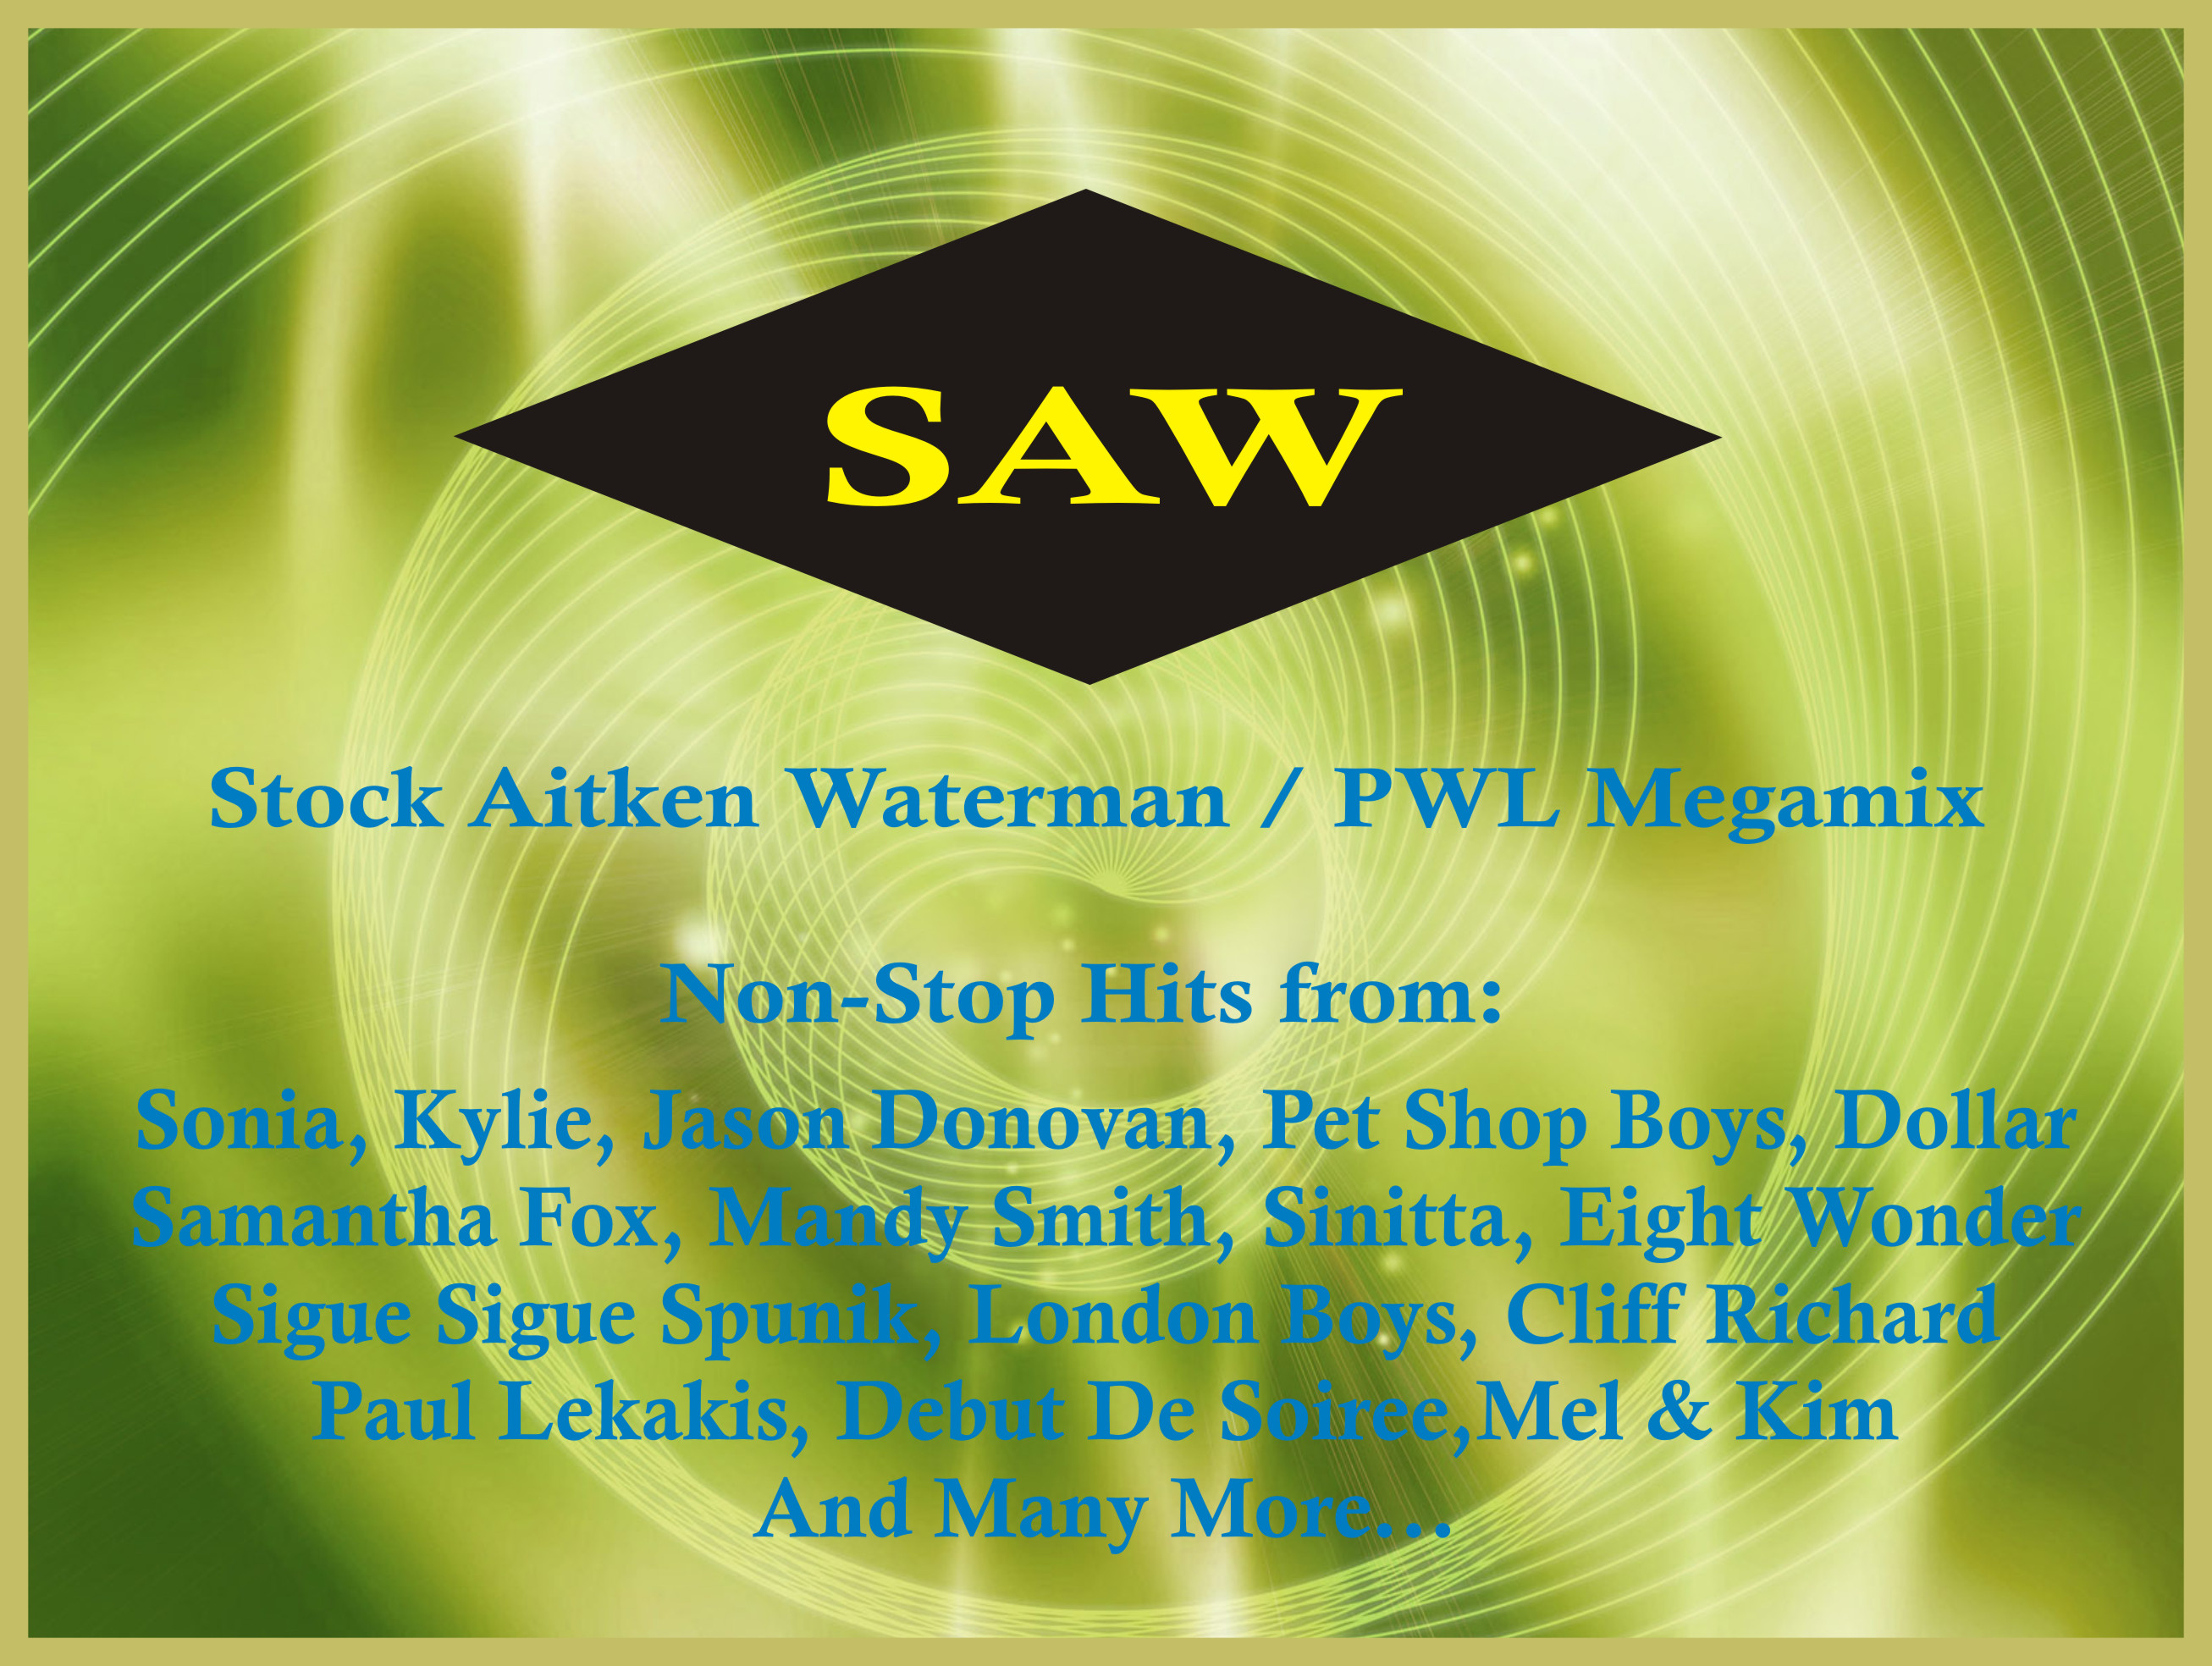 Stock Aitken Waterman PWL Megamix